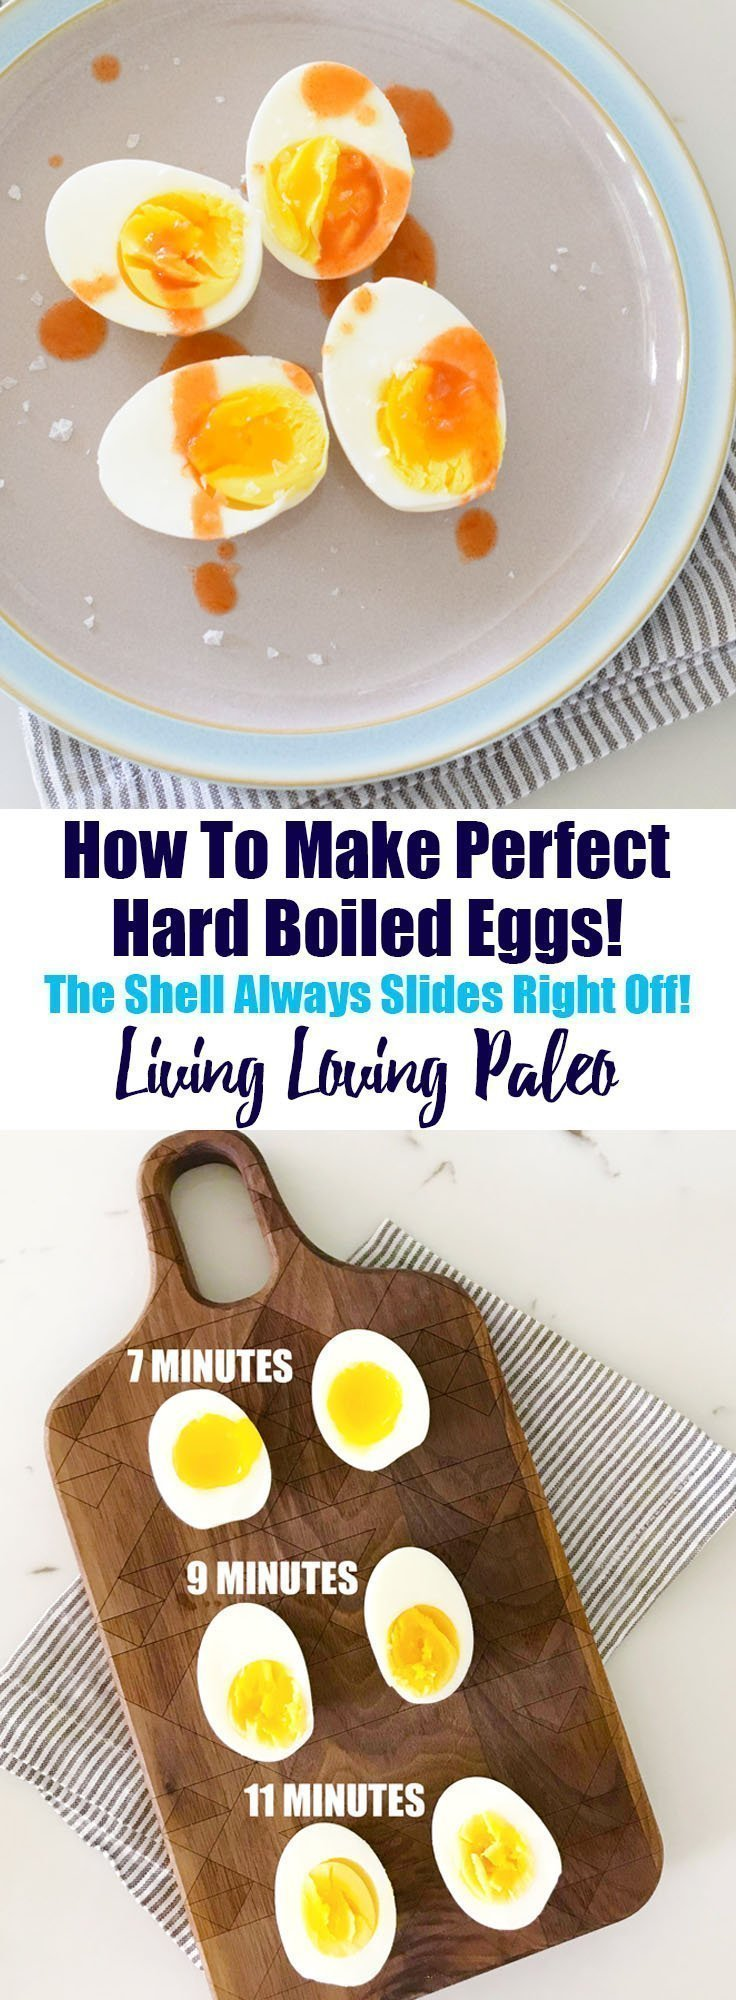 Perfect Hard Boiled Eggs, Every Single Time!